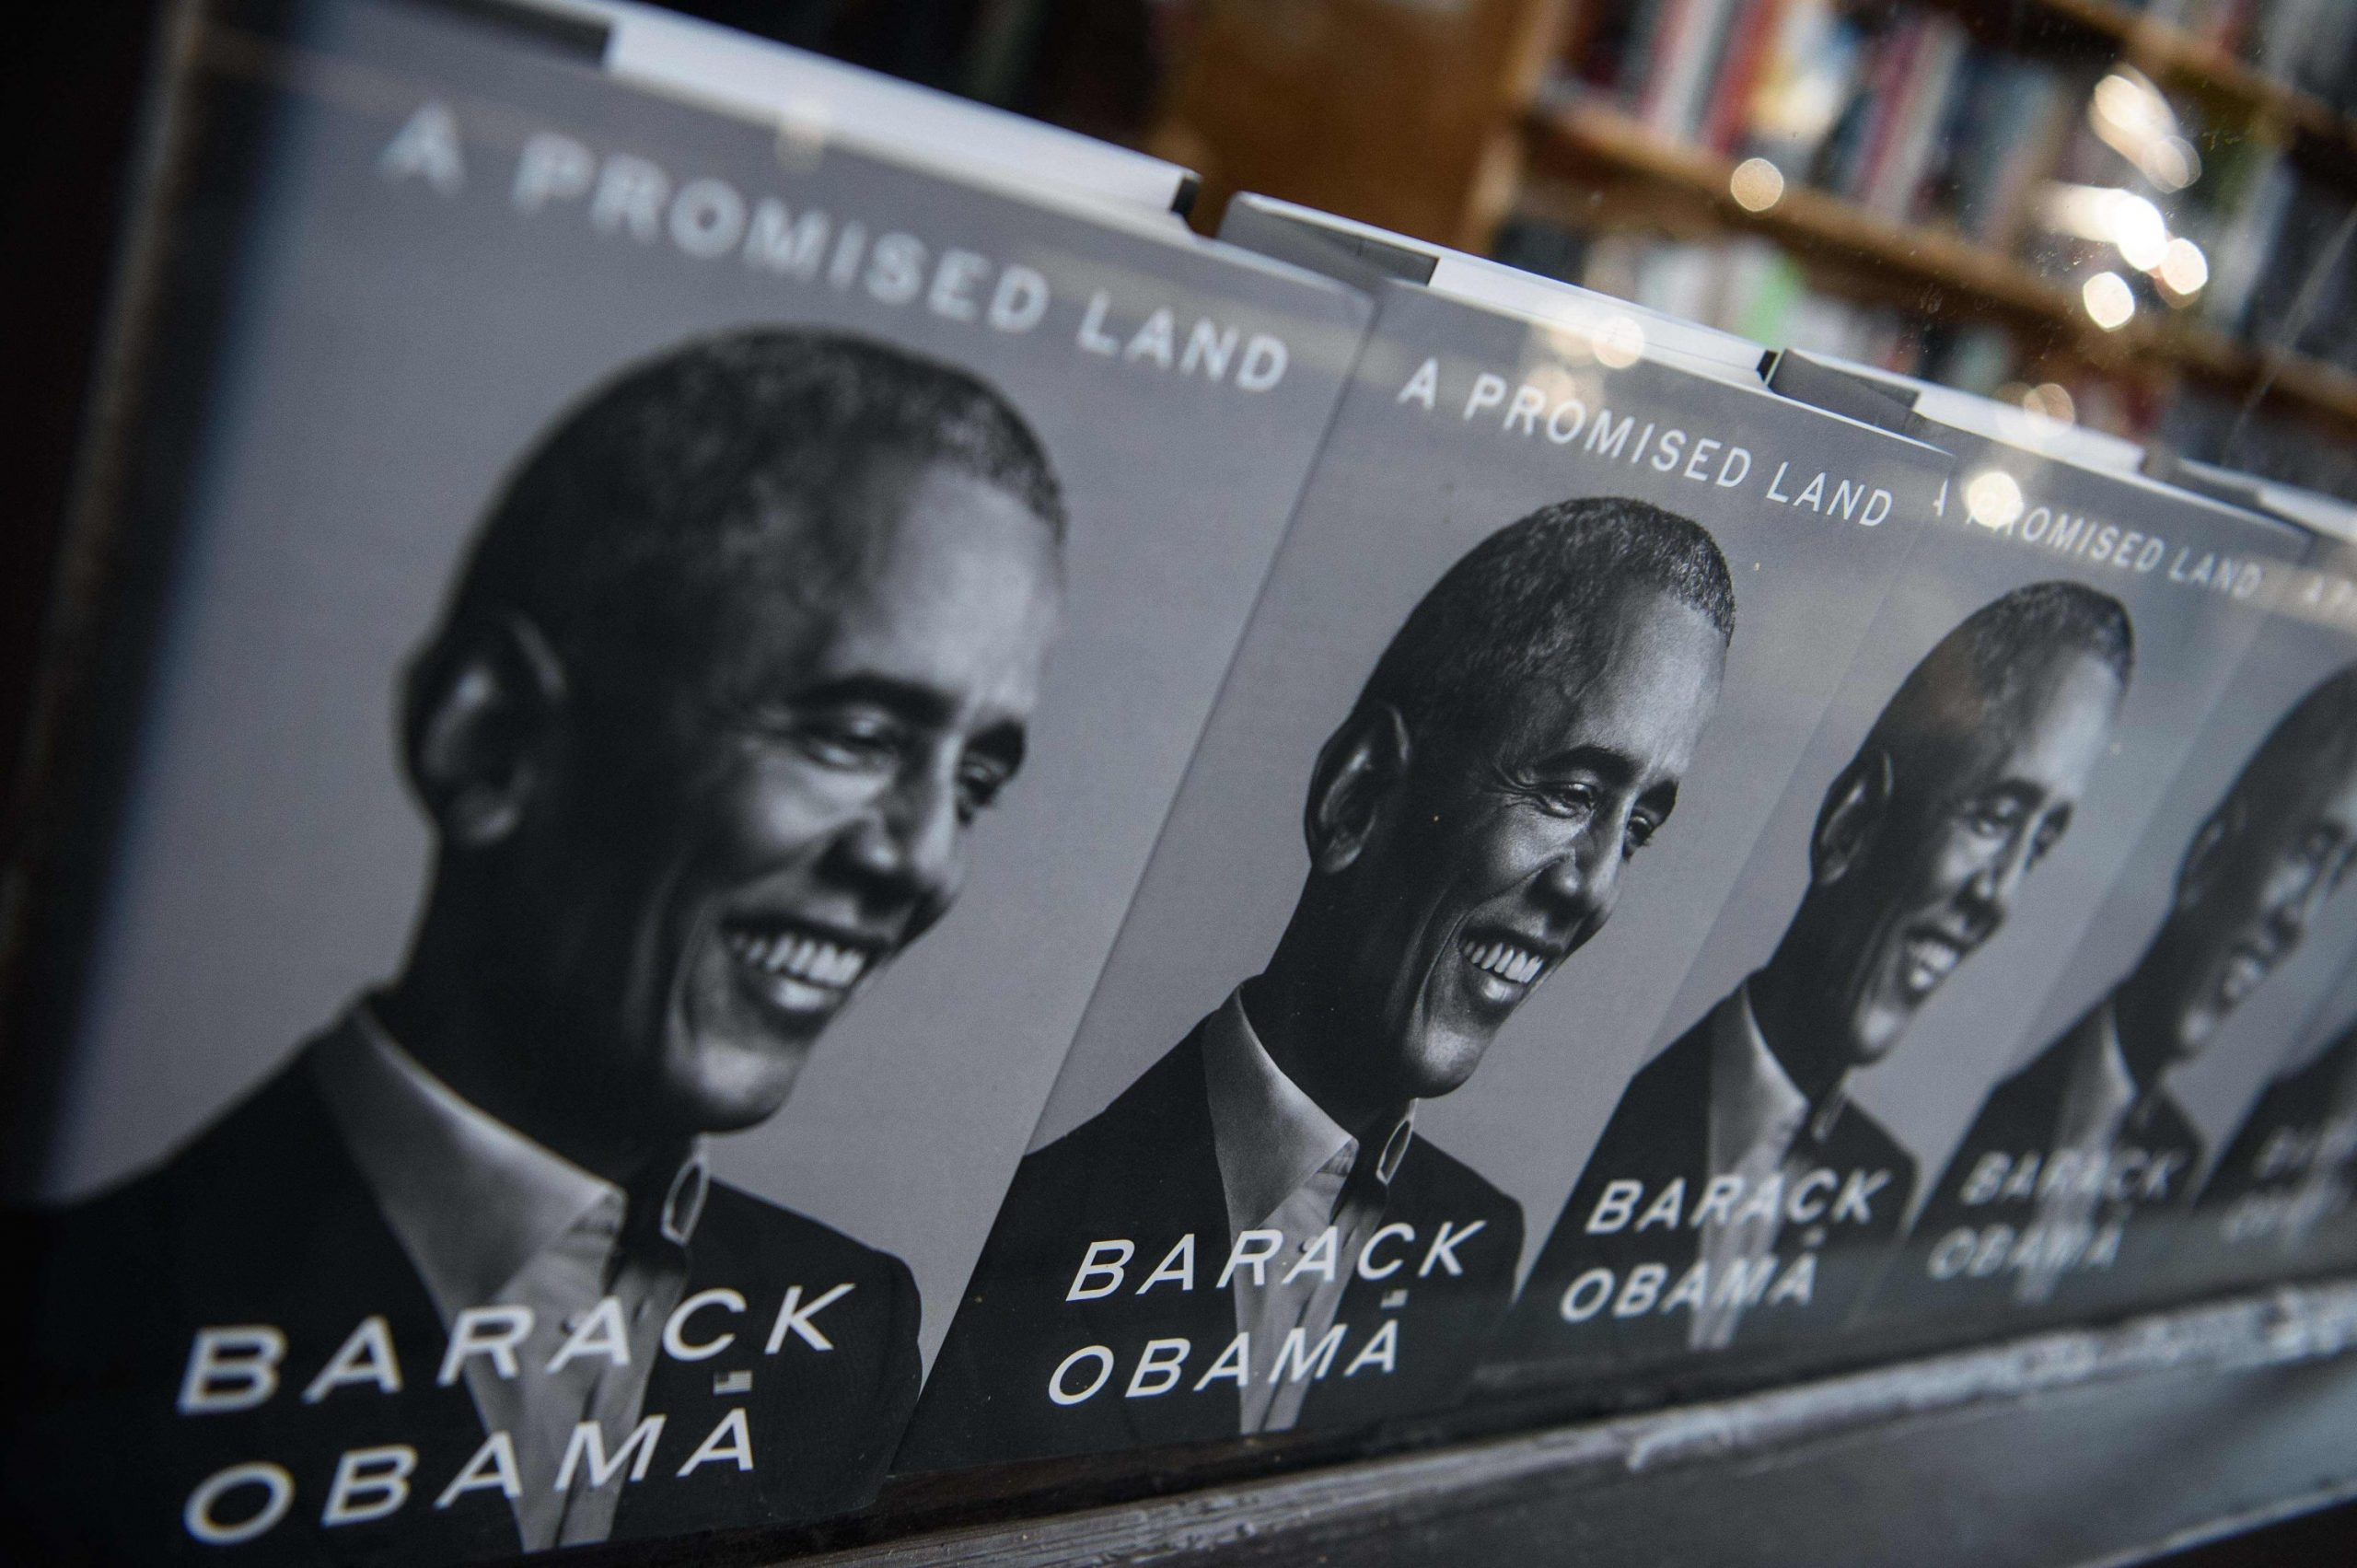 Barack Obama memoir sells record copies in its first 24 hours